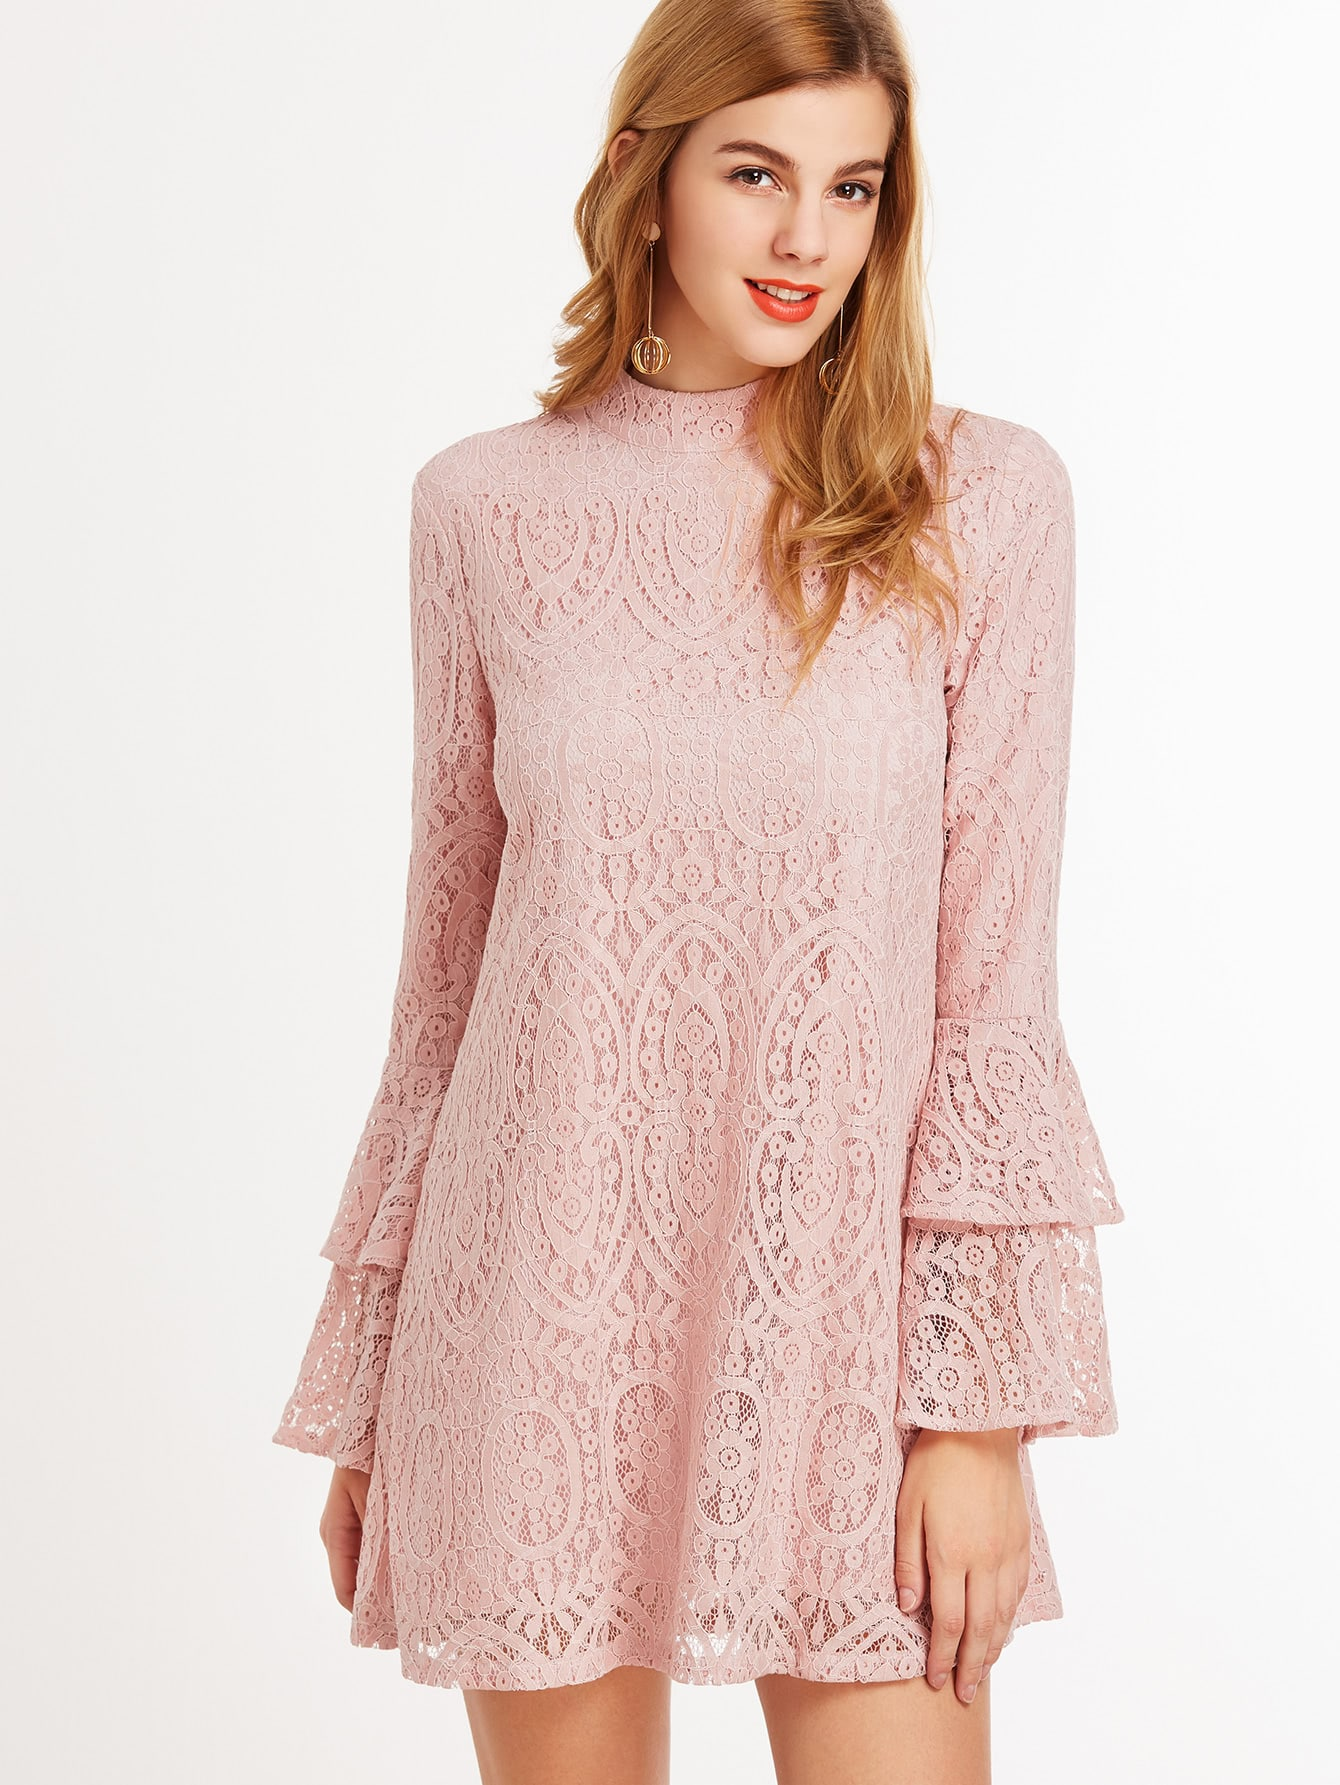 Pink Keyhole Mock Neck Layered Ruffle Sleeve Lace DressPink Keyhole Mock Neck Layered Ruffle Sleeve Lace Dress<br><br>color: Pink<br>size: L,M,S,XS